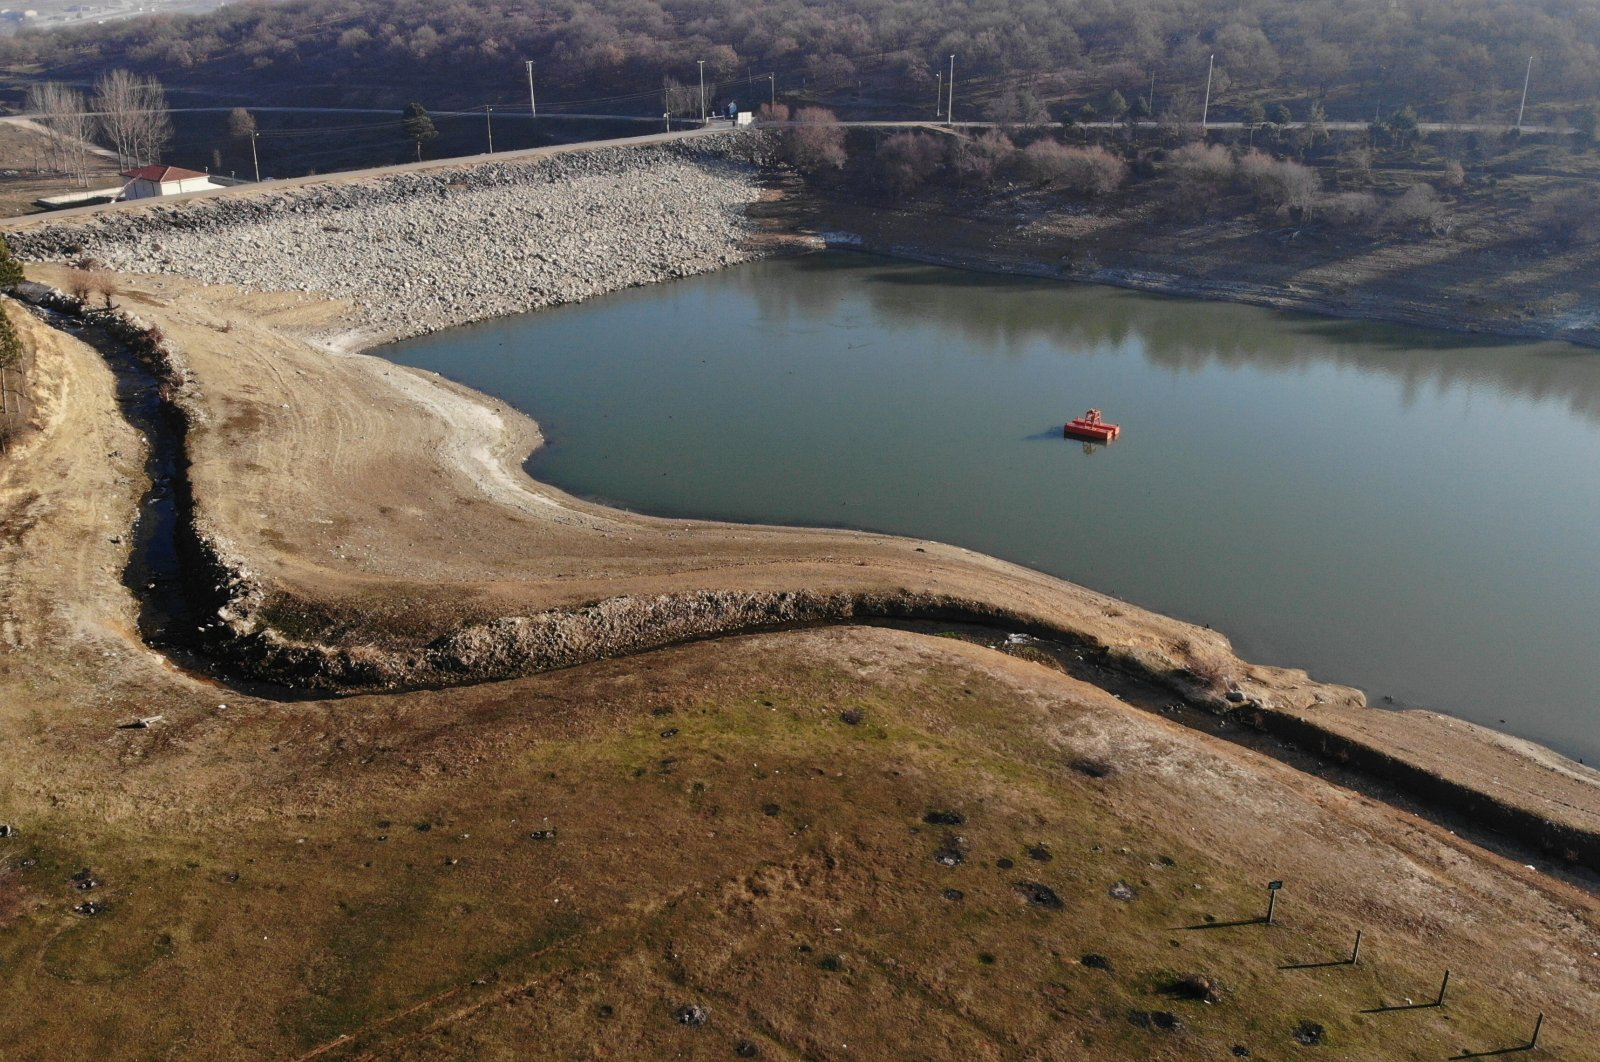 An aerial view of the Gölköy Dam, where the water levels have significantly dropped, in Bolu, northwestern Turkey, Dec. 30, 2020. (IHA Photo)